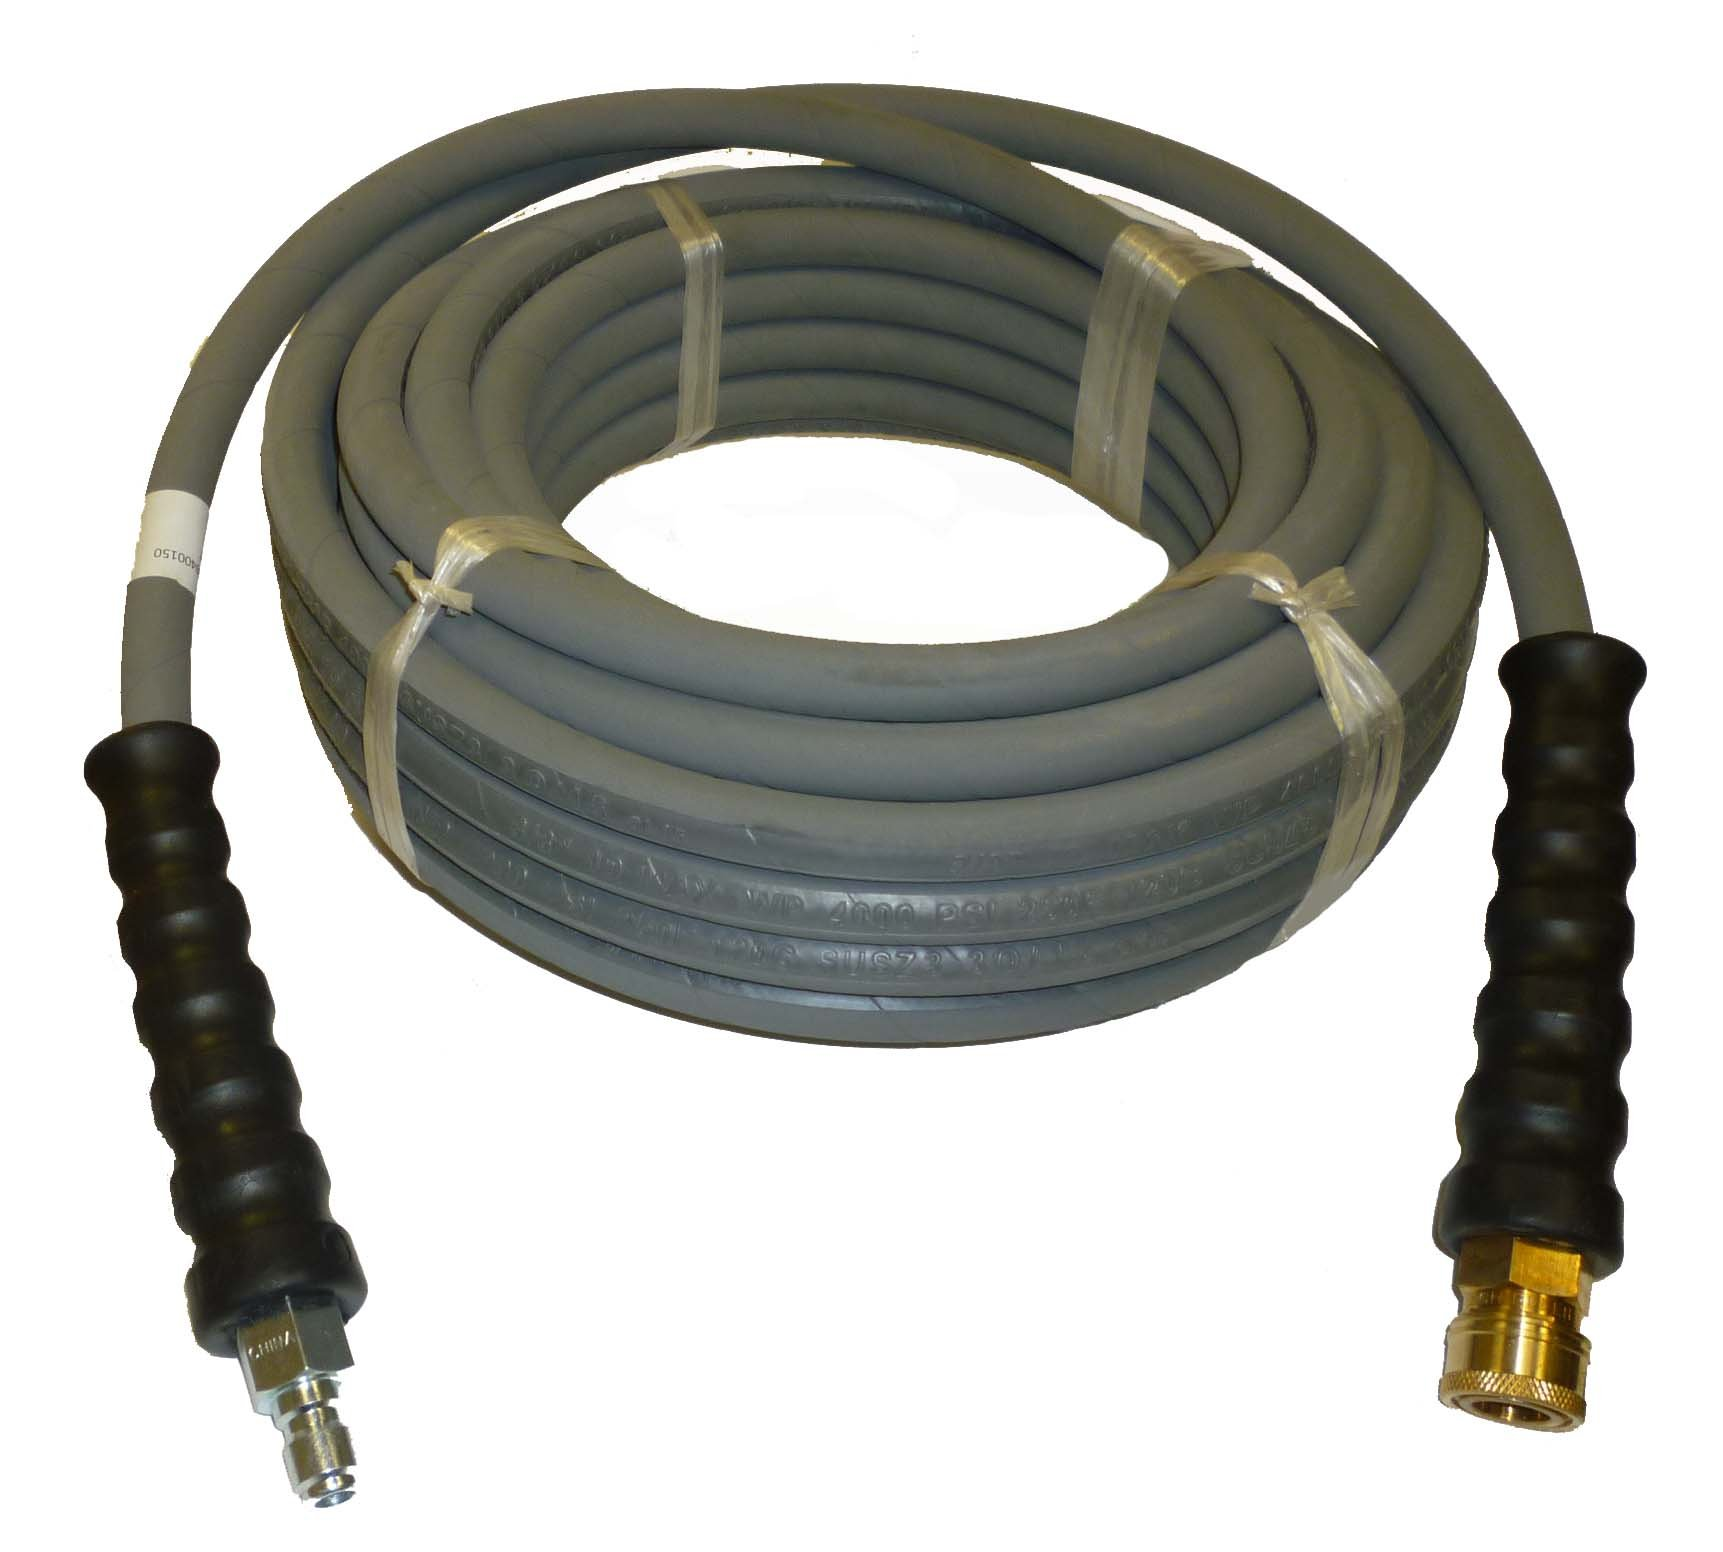 4000 PSI Grey 3/8'' x 50 FT 1 Layers of High Tensile Wire Braided Rubber Wrapped Pressure Washer Hose with Couplers